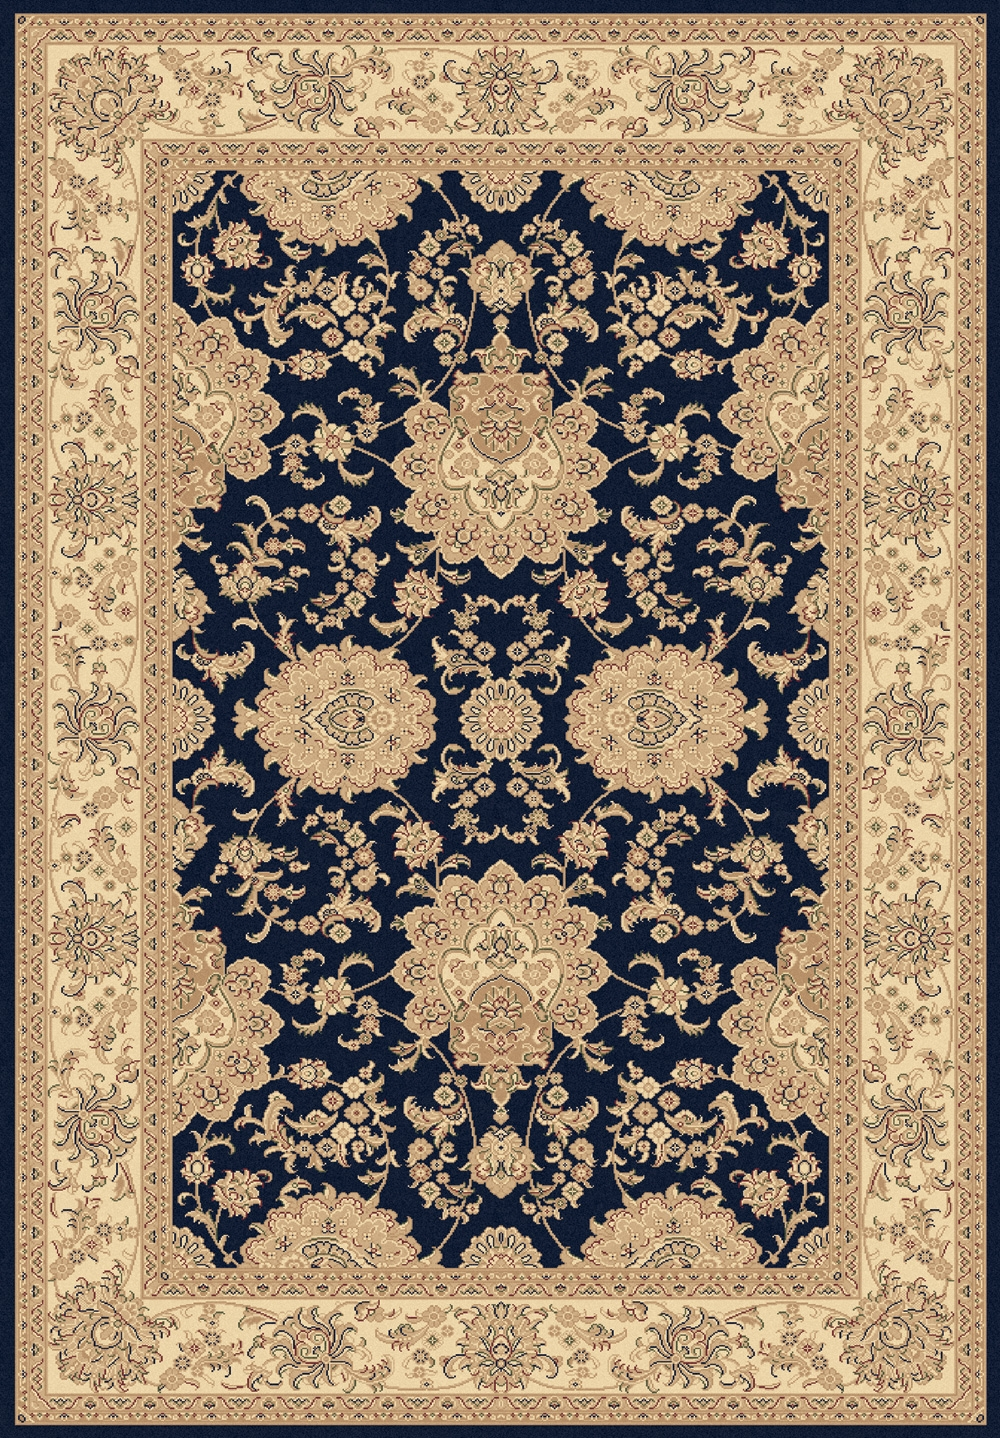 Navy 58019 530 Legacy Rug By Dynamic